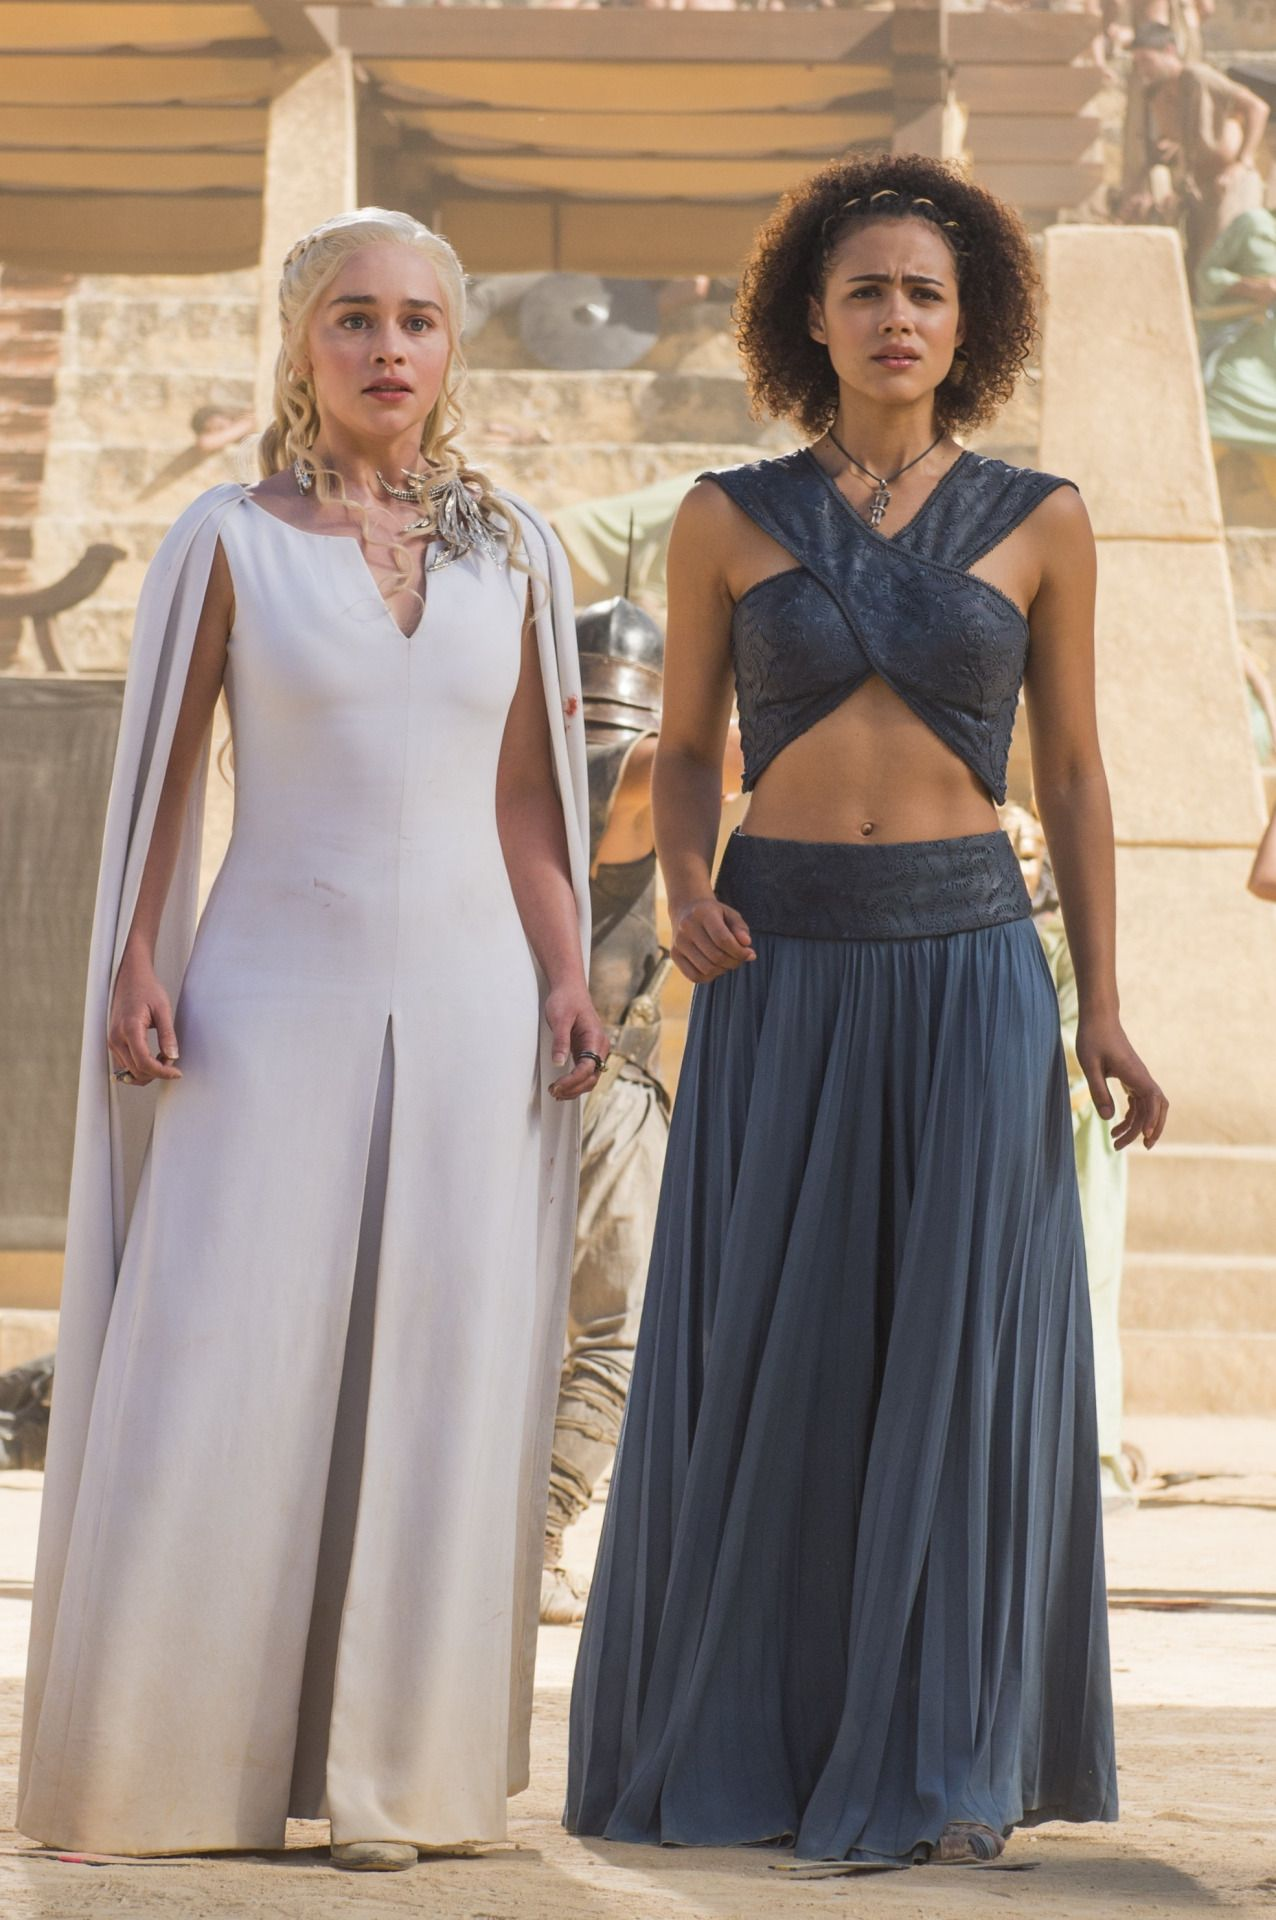 7aafb2cc49bb366171615f4cdf9fddbd The 18 Biggest Changes In Game Of Thrones From Book To Screen